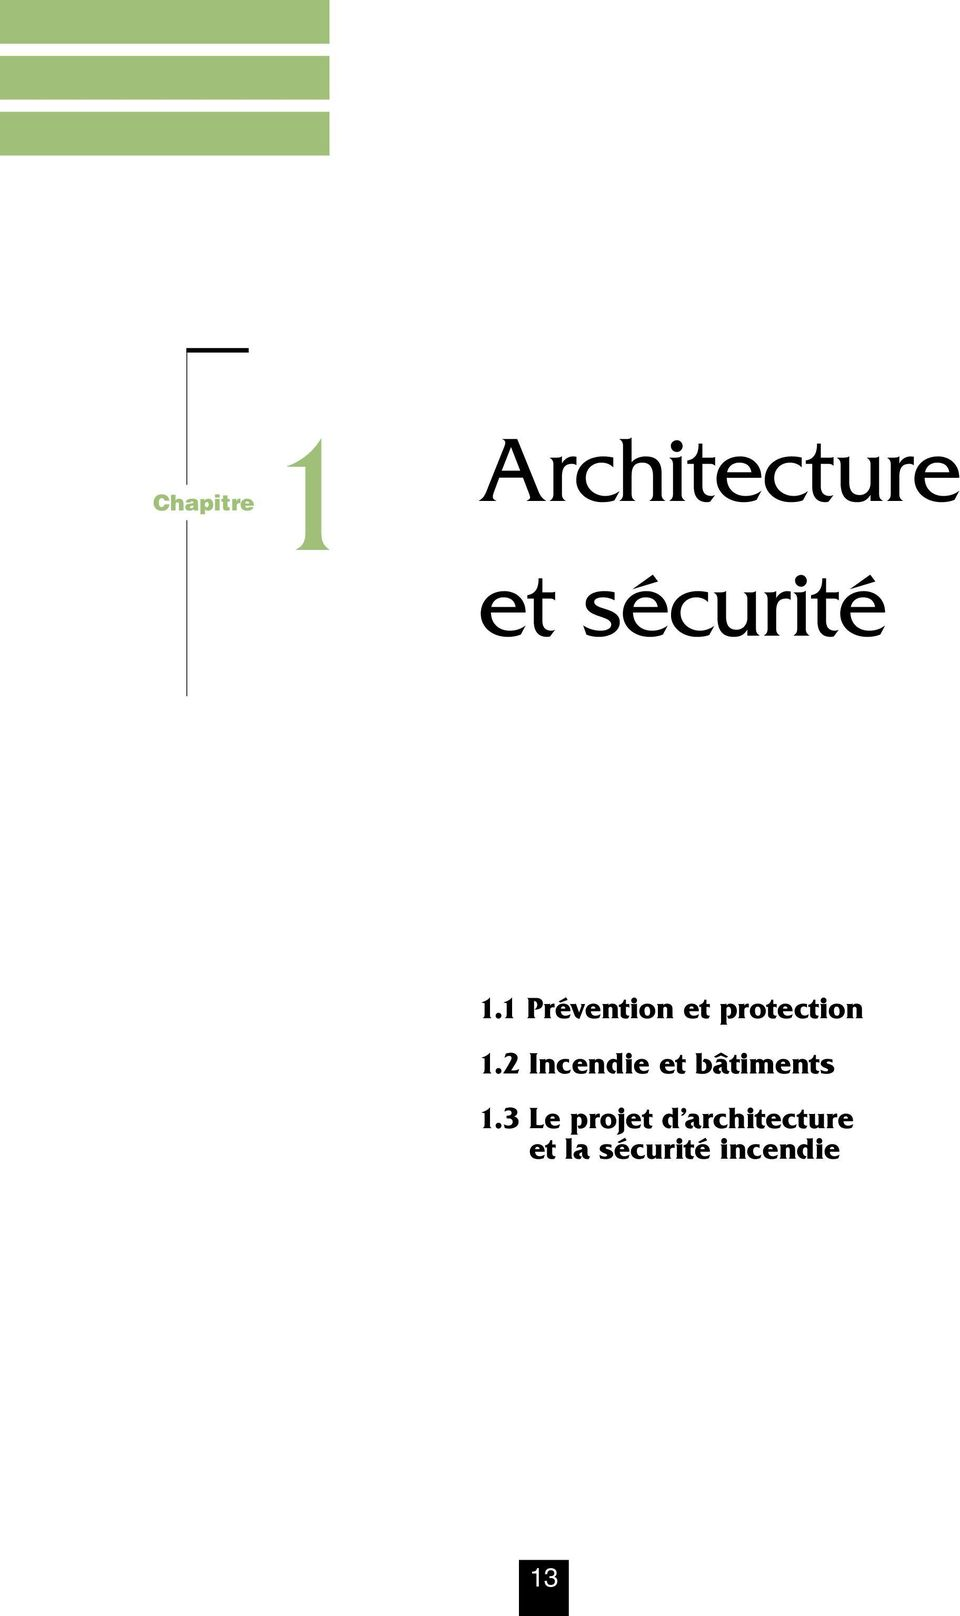 Conception architecturale et s curit incendie pdf for Architecture urbaine definition